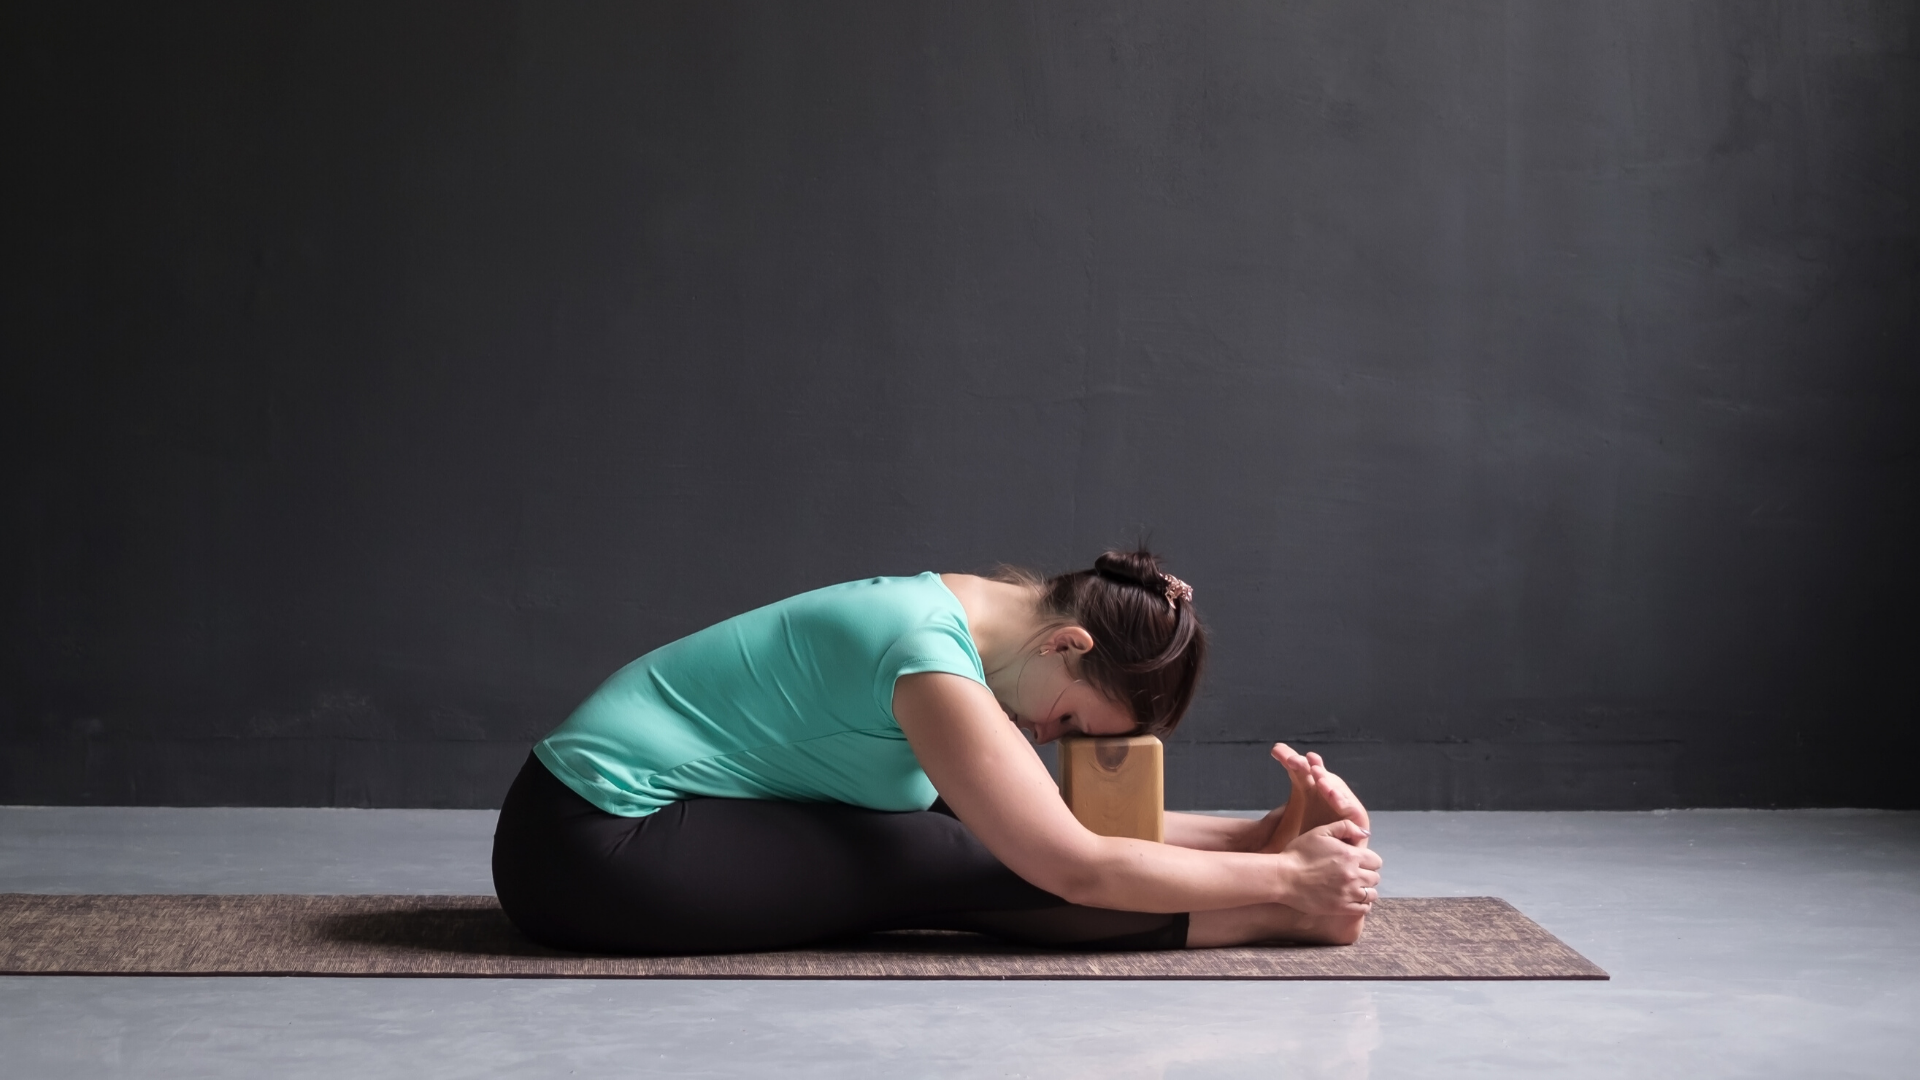 yoga_instructor_demonstrating_how_to_practice_seated_forward_bend_in_yoga_at_home